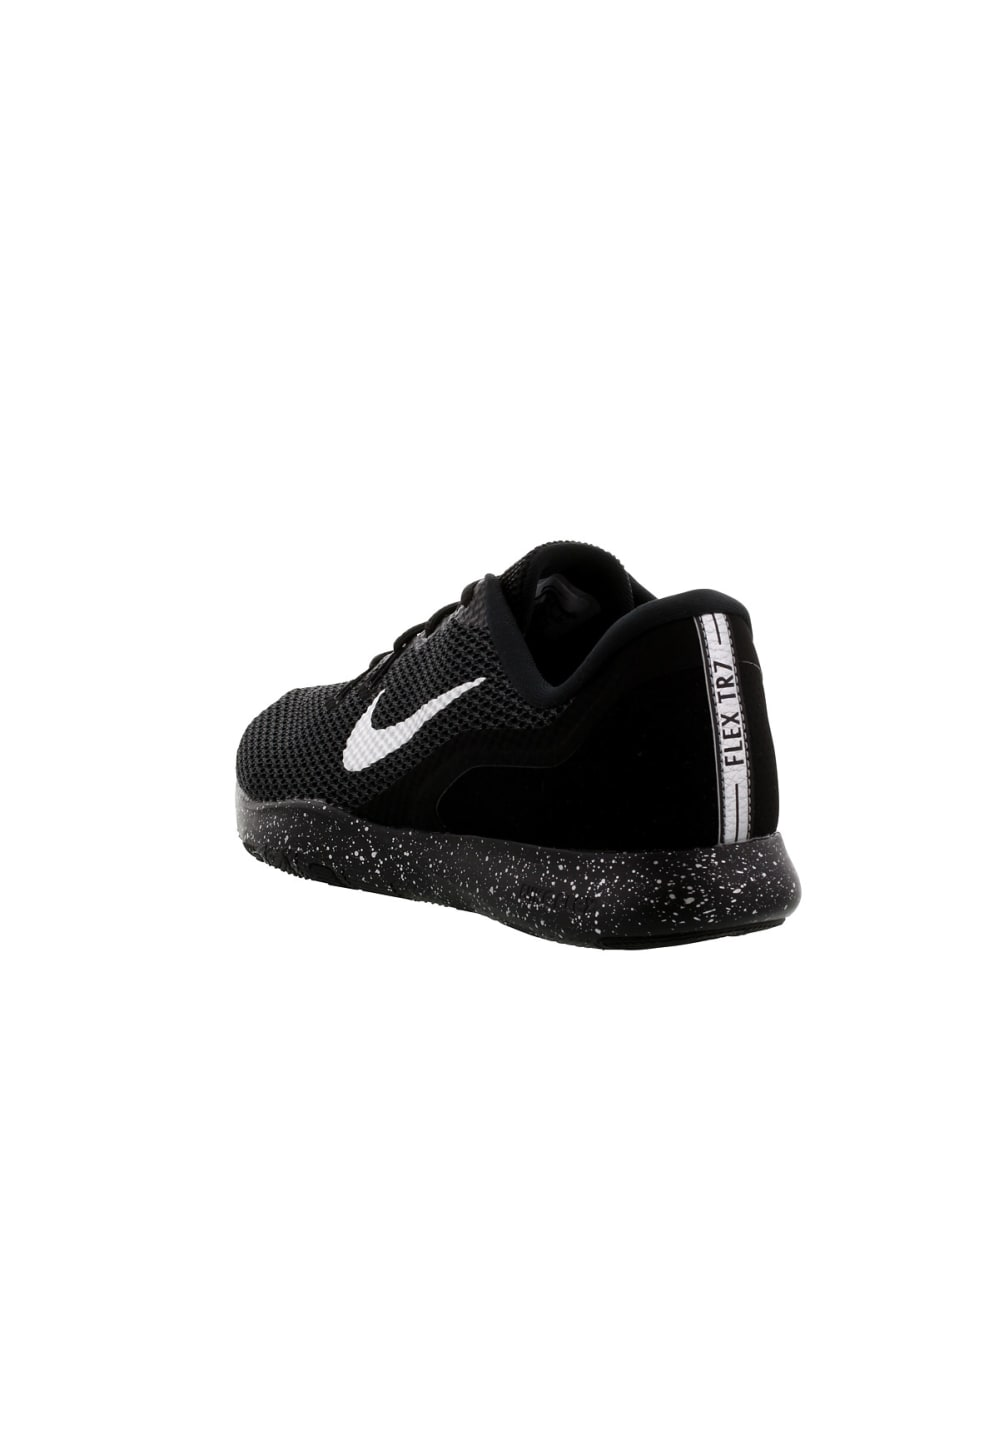 134378d3089f3 Next. -30%. This product is currently out of stock. Nike. Flex Trainer 7  Premium - Fitness shoes for Women